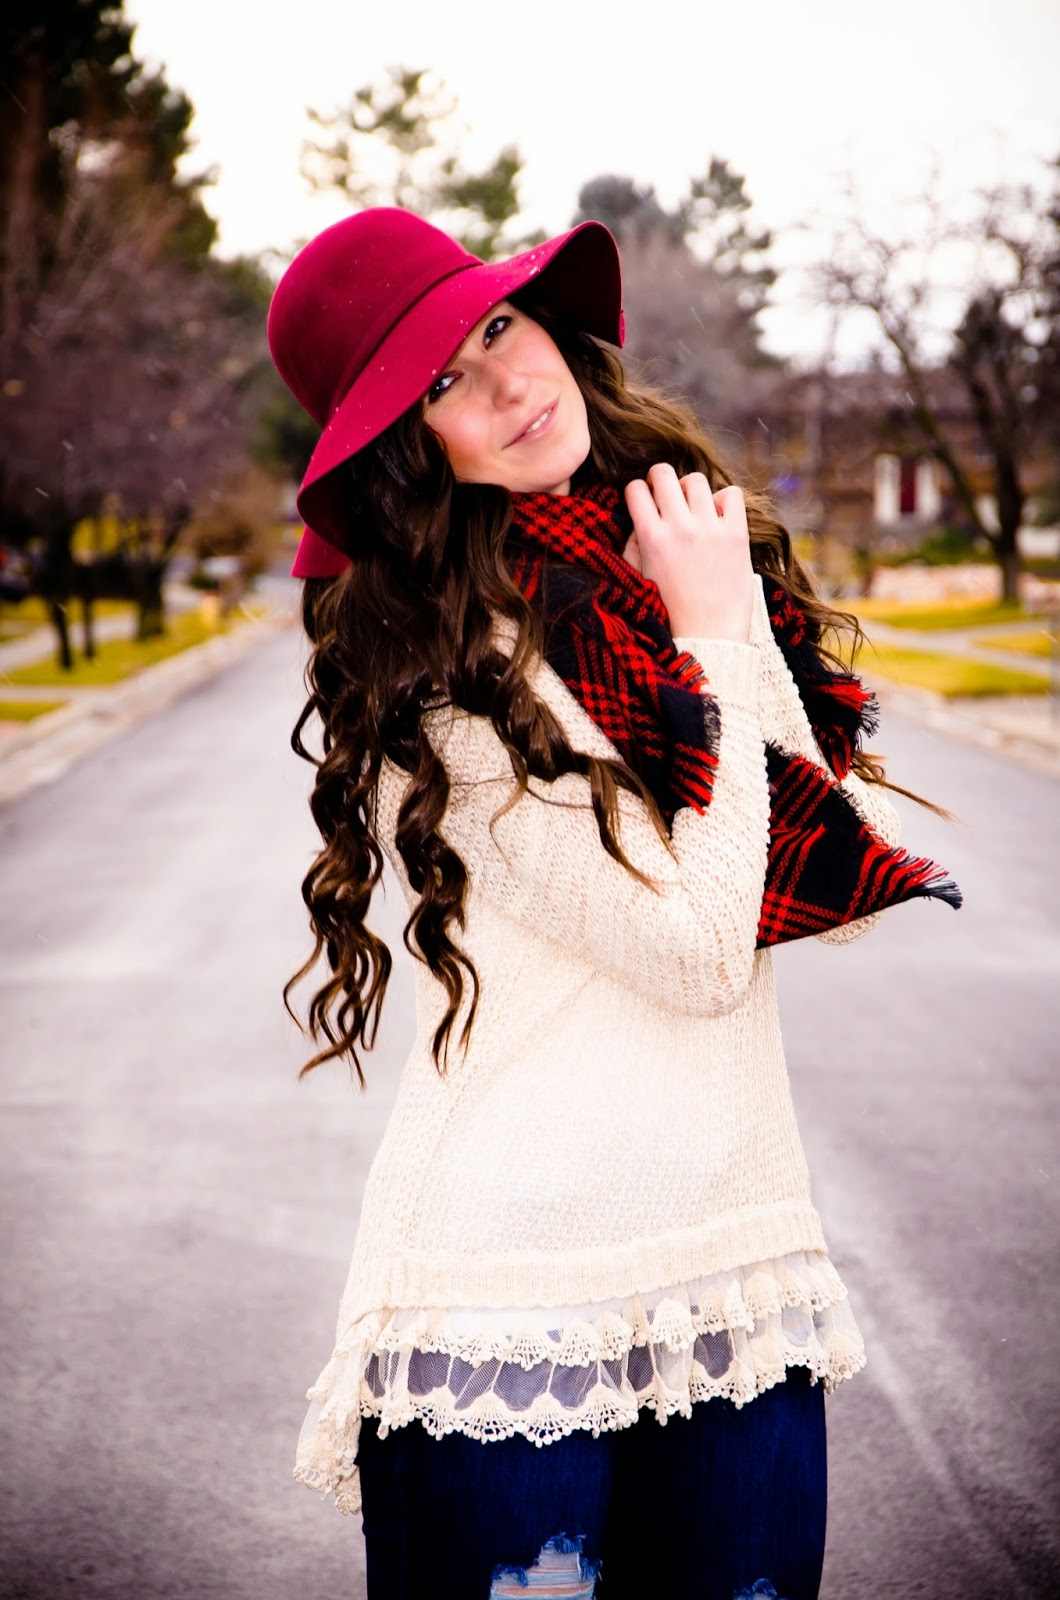 lace up booties, lace up high heel booties, high heel boots, burgundy hat, burgundy over the knee boots, cozy outfit, cozy sweater, cozy sweater tunic, cozy wear, plaid scarf, shop-stellab, stella b, stella b clothing, black five, blackfive clothing, holiday casual look, holiday cozy look, cold weather outfit, pretty,